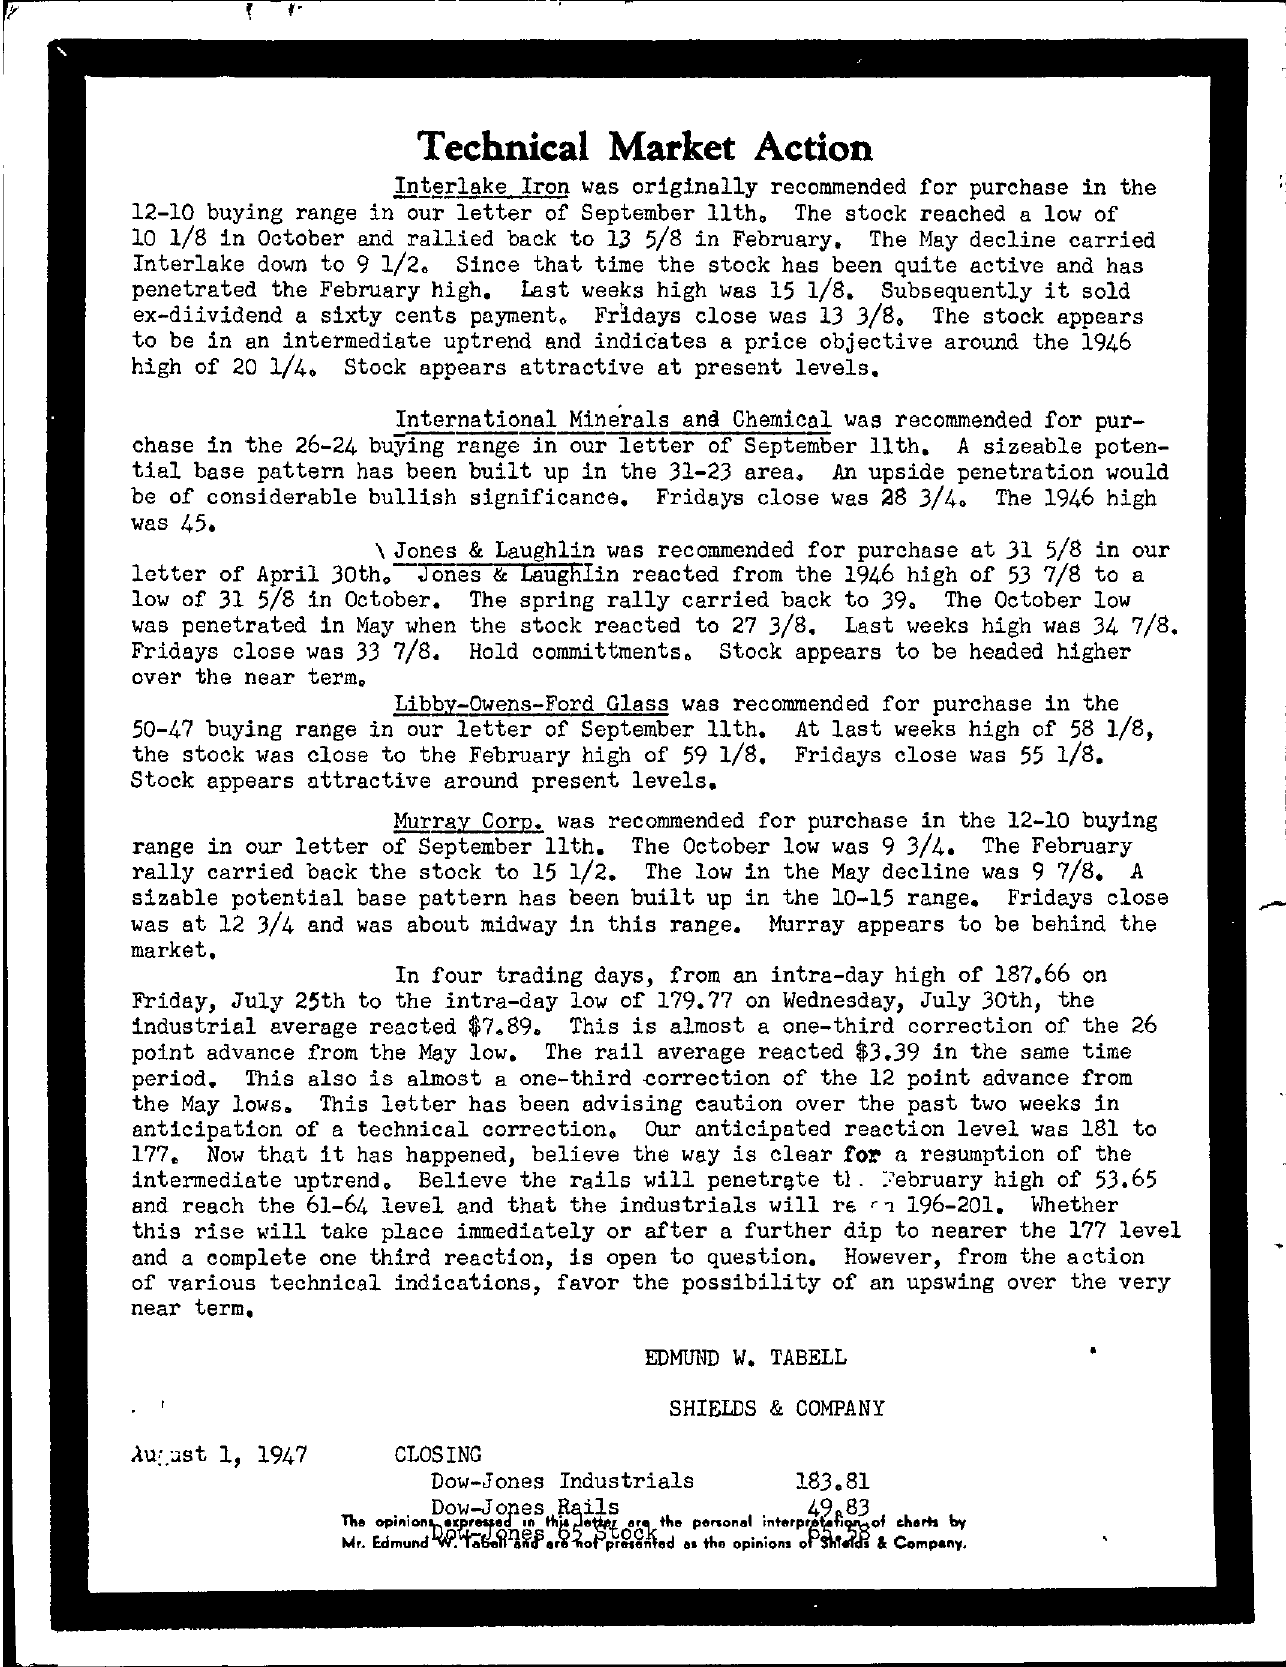 Tabell's Market Letter - August 01, 1947